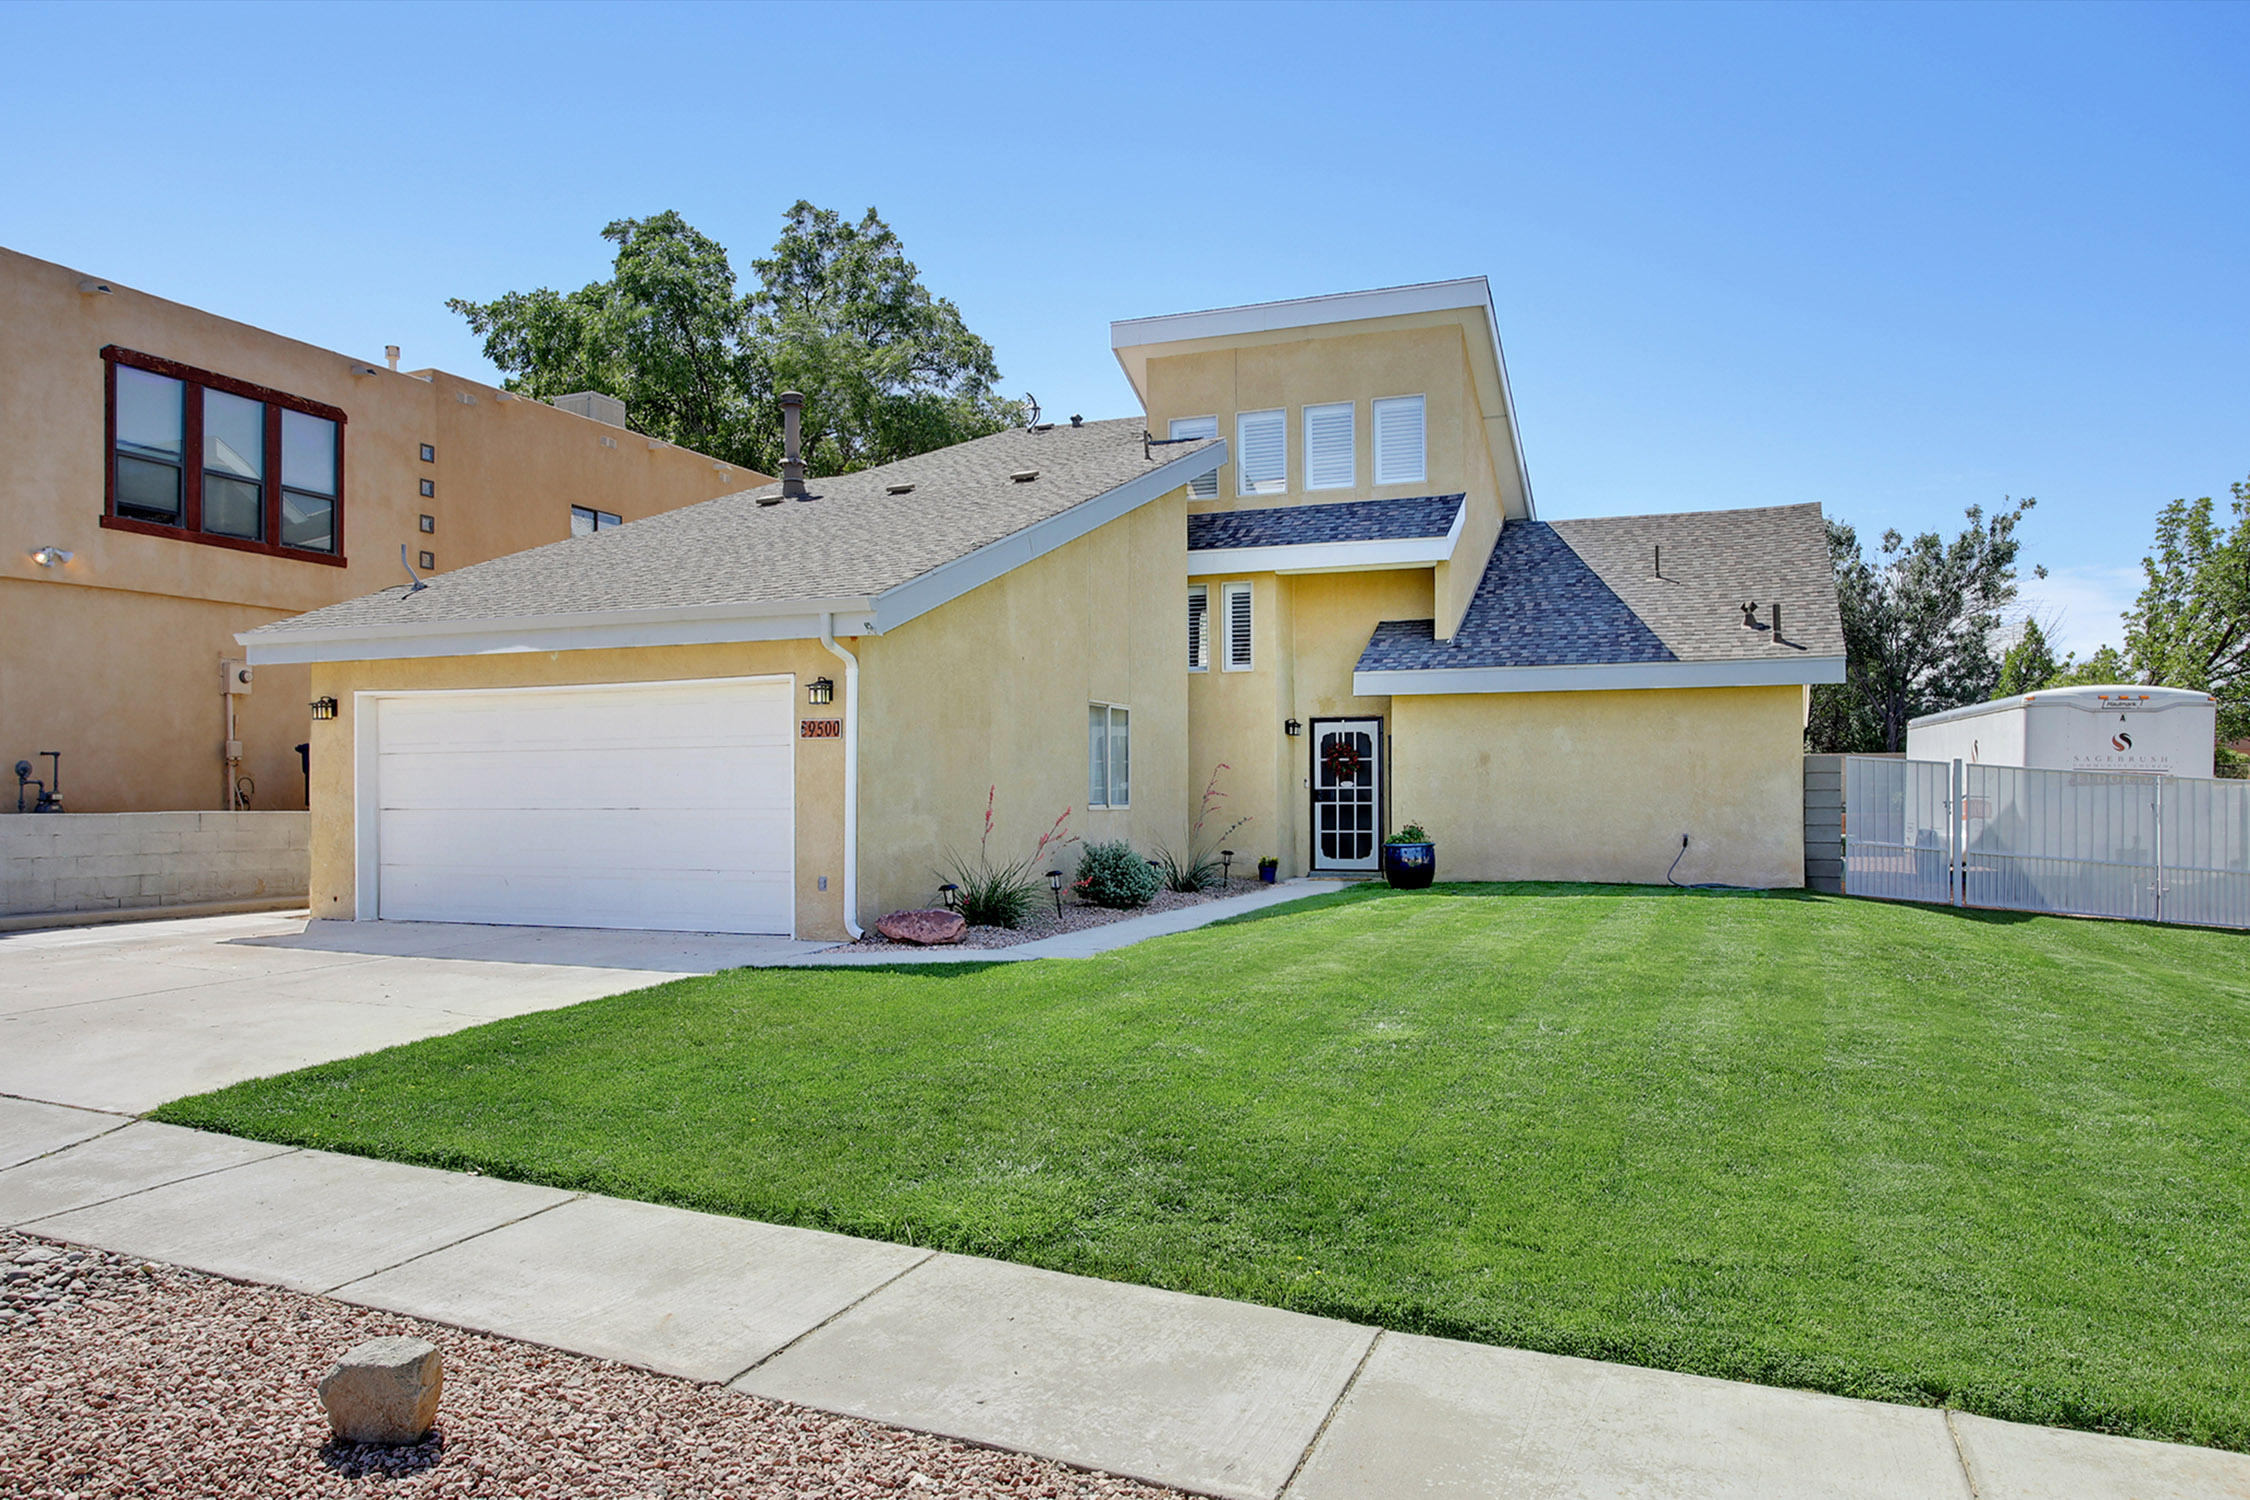 9500 GIDDINGS Avenue NE Property Photo - Albuquerque, NM real estate listing